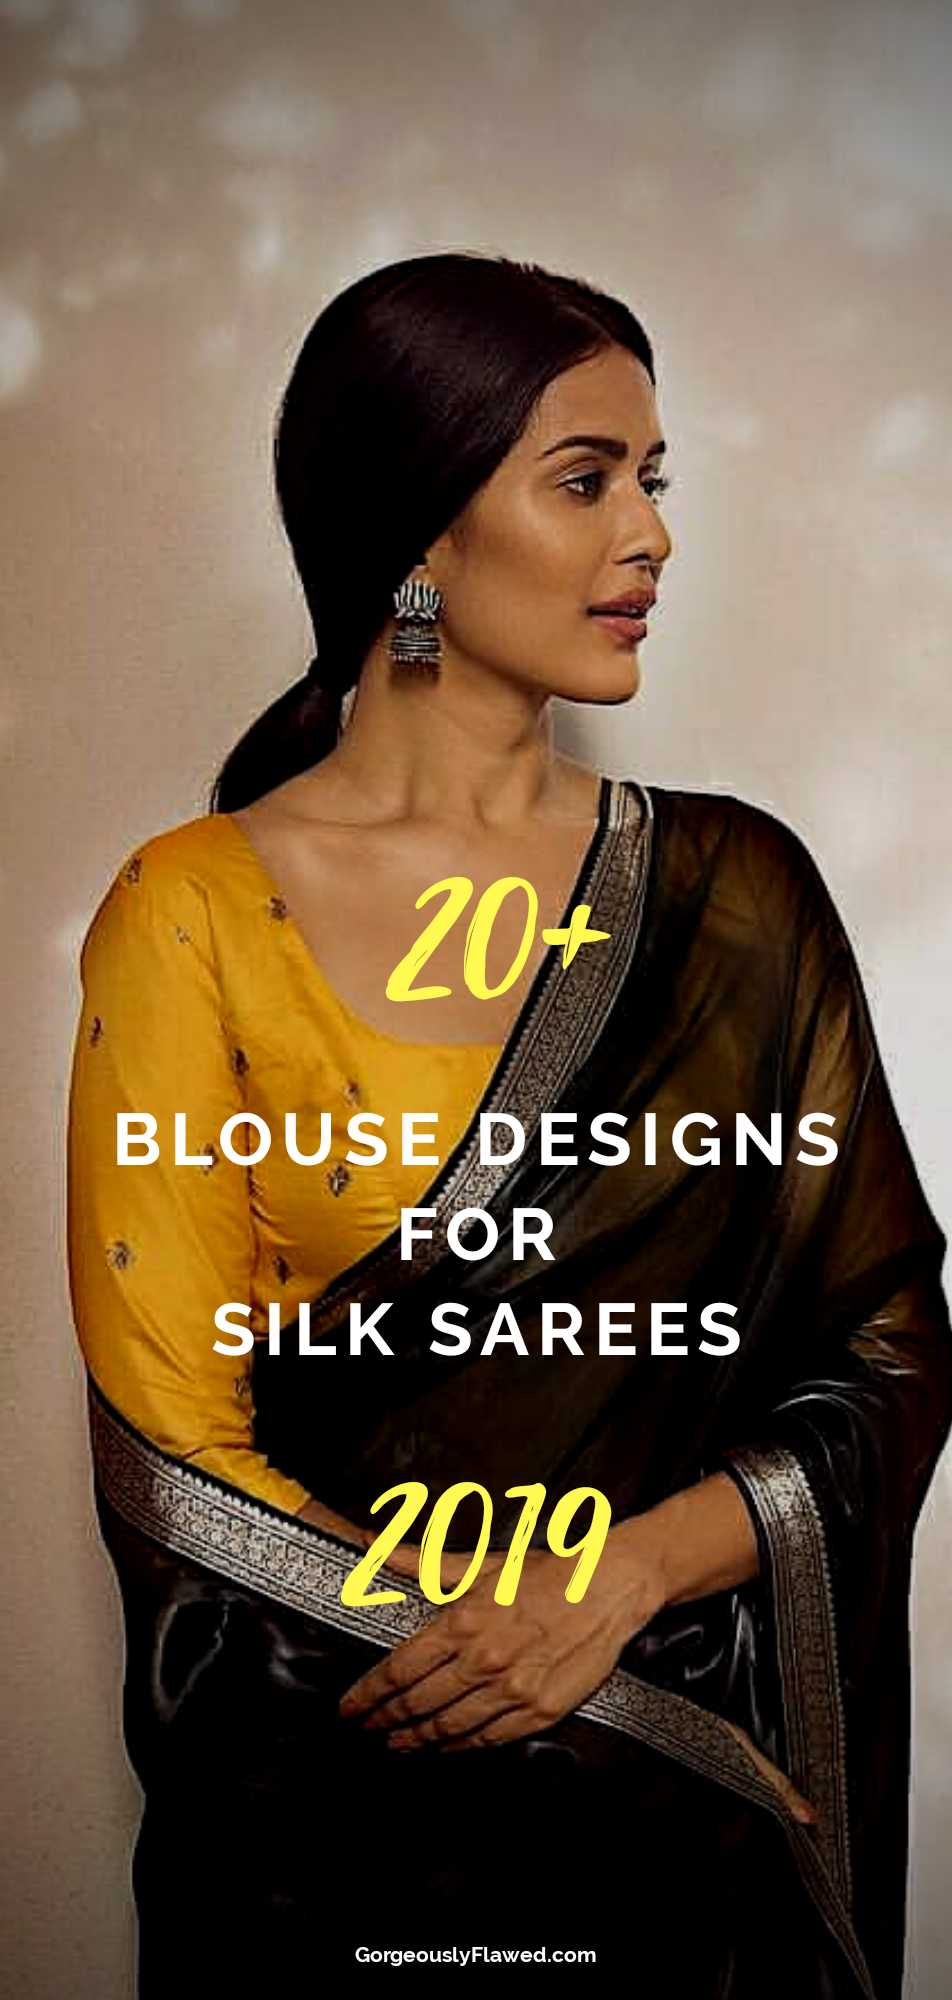 20+ Blouse Designs For Silk Sarees